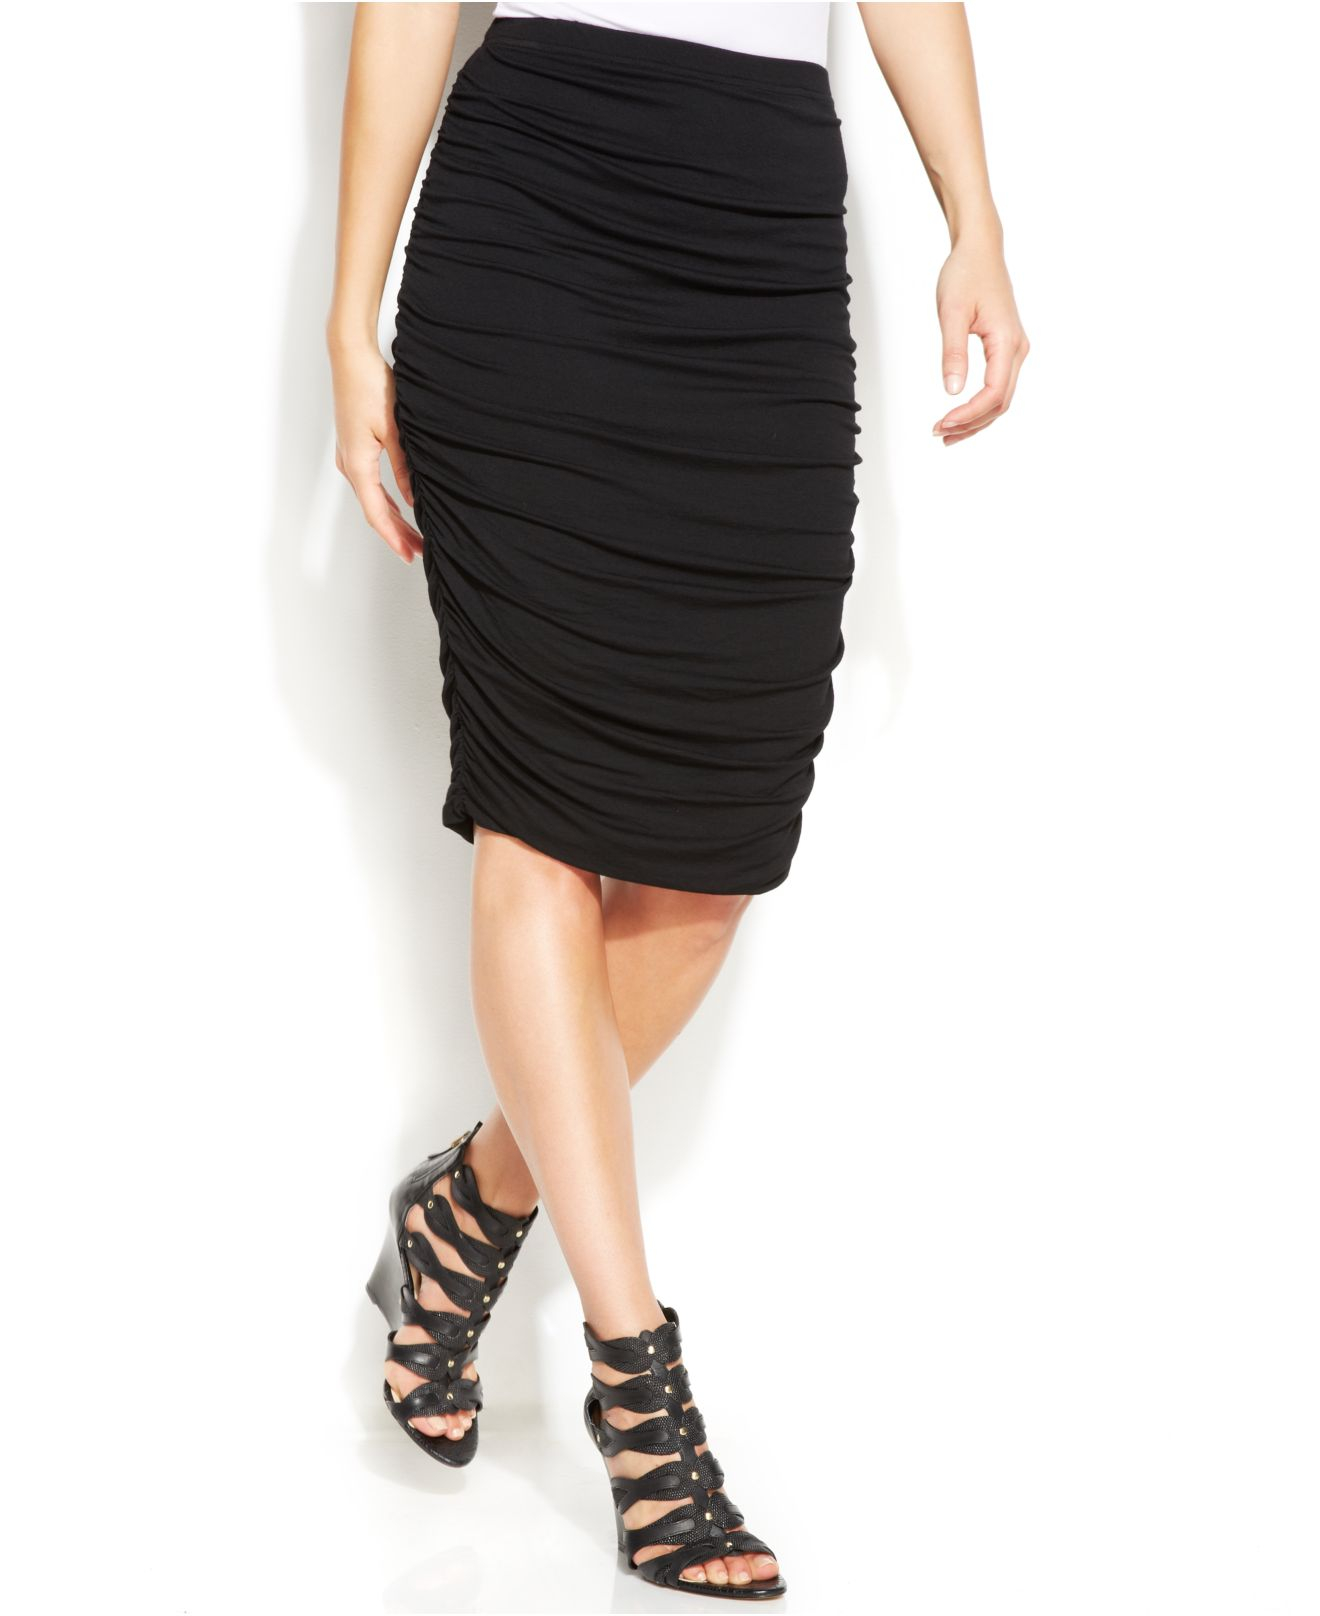 Ruched Pencil Skirt - Skirts